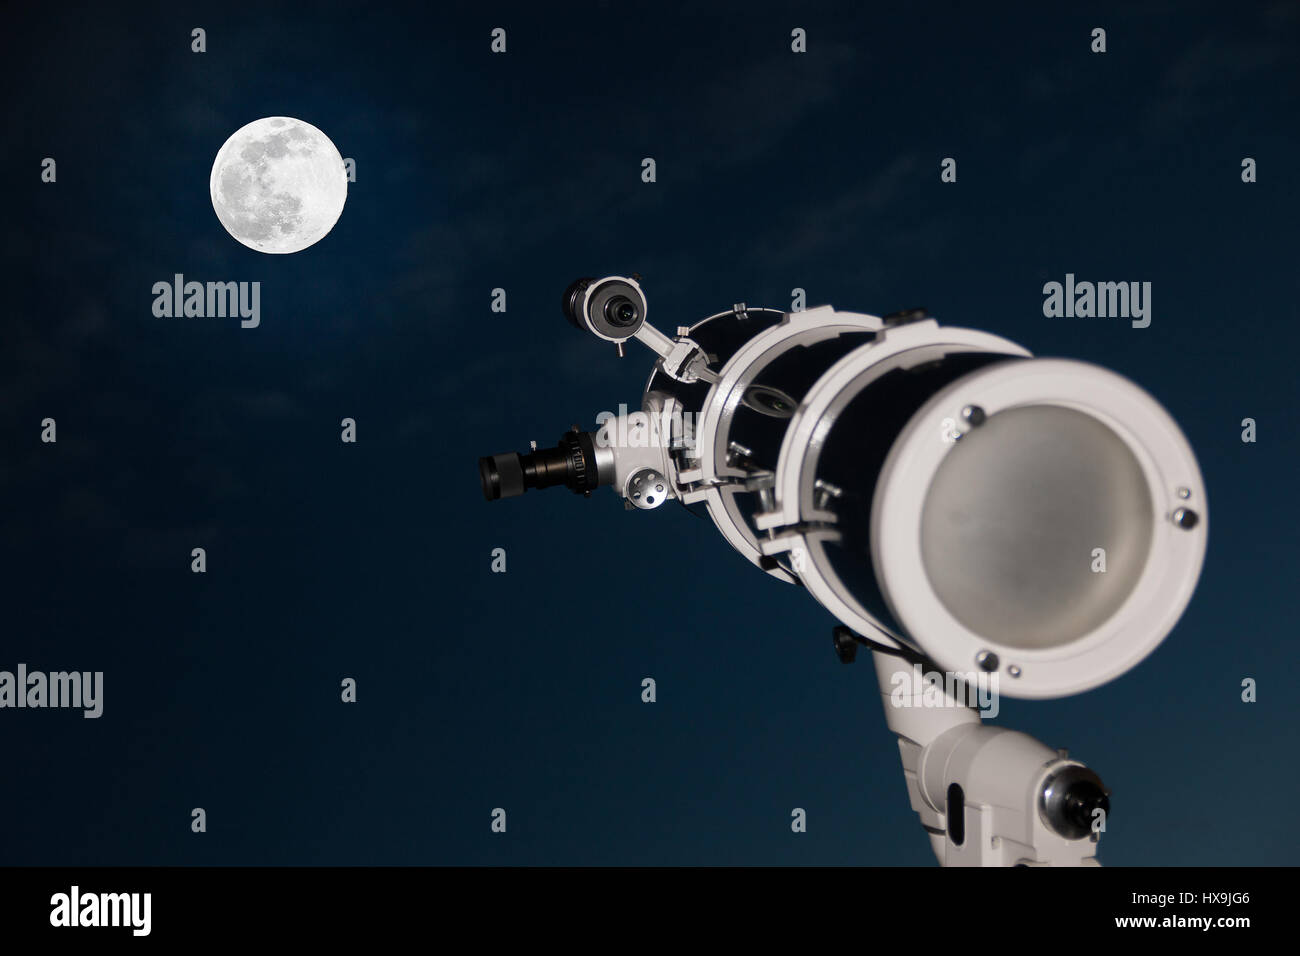 Astronomical telescope over dark sky with the moon in the night - Stock Image